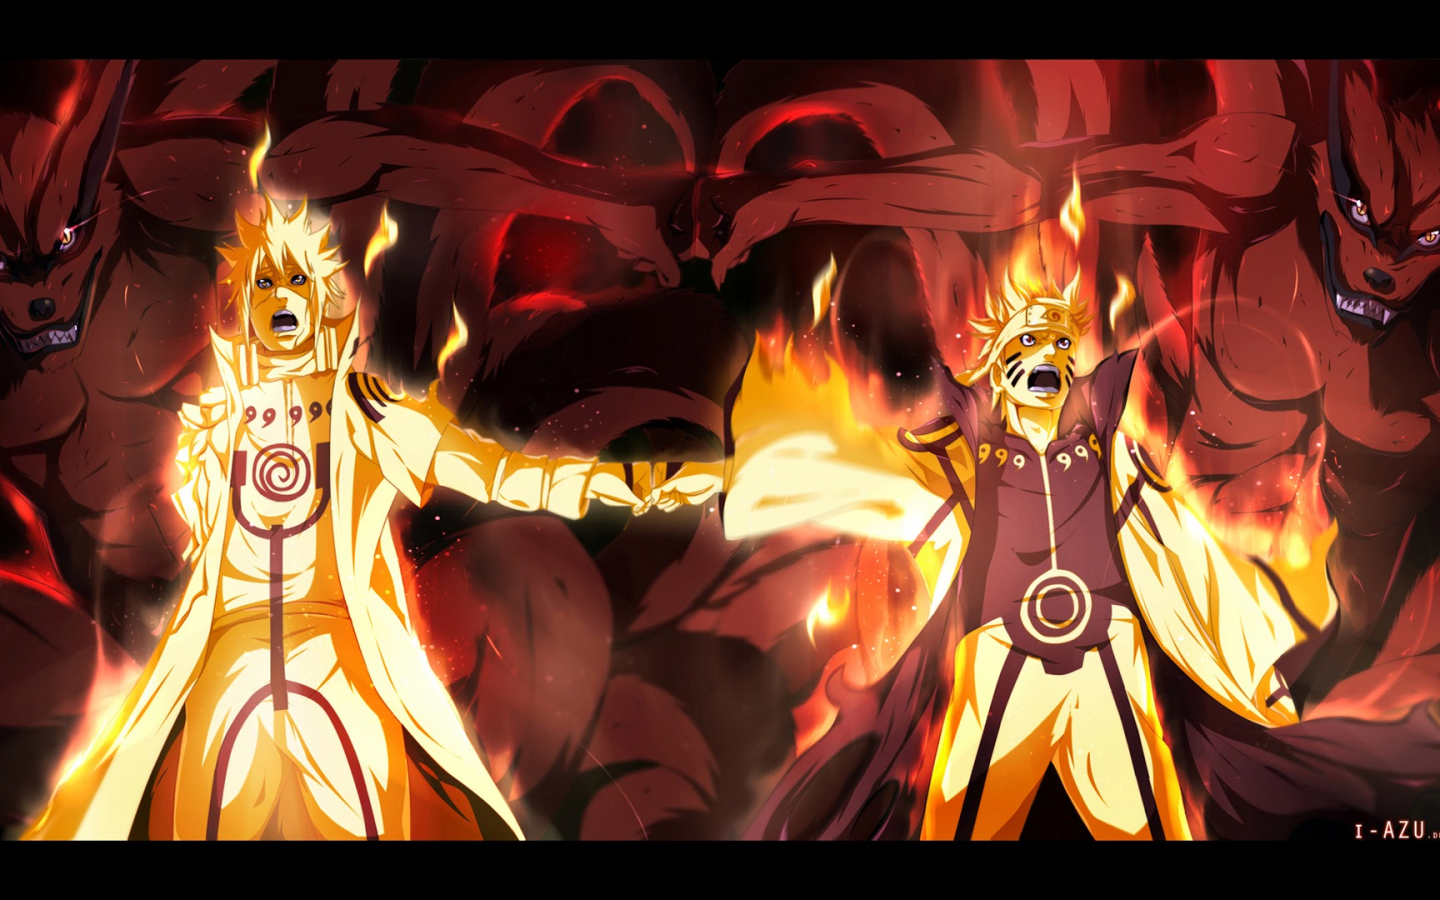 Free download naruto anime picture hd wallpaper 1920x1080 02 1920x1080 for your Desktop ...